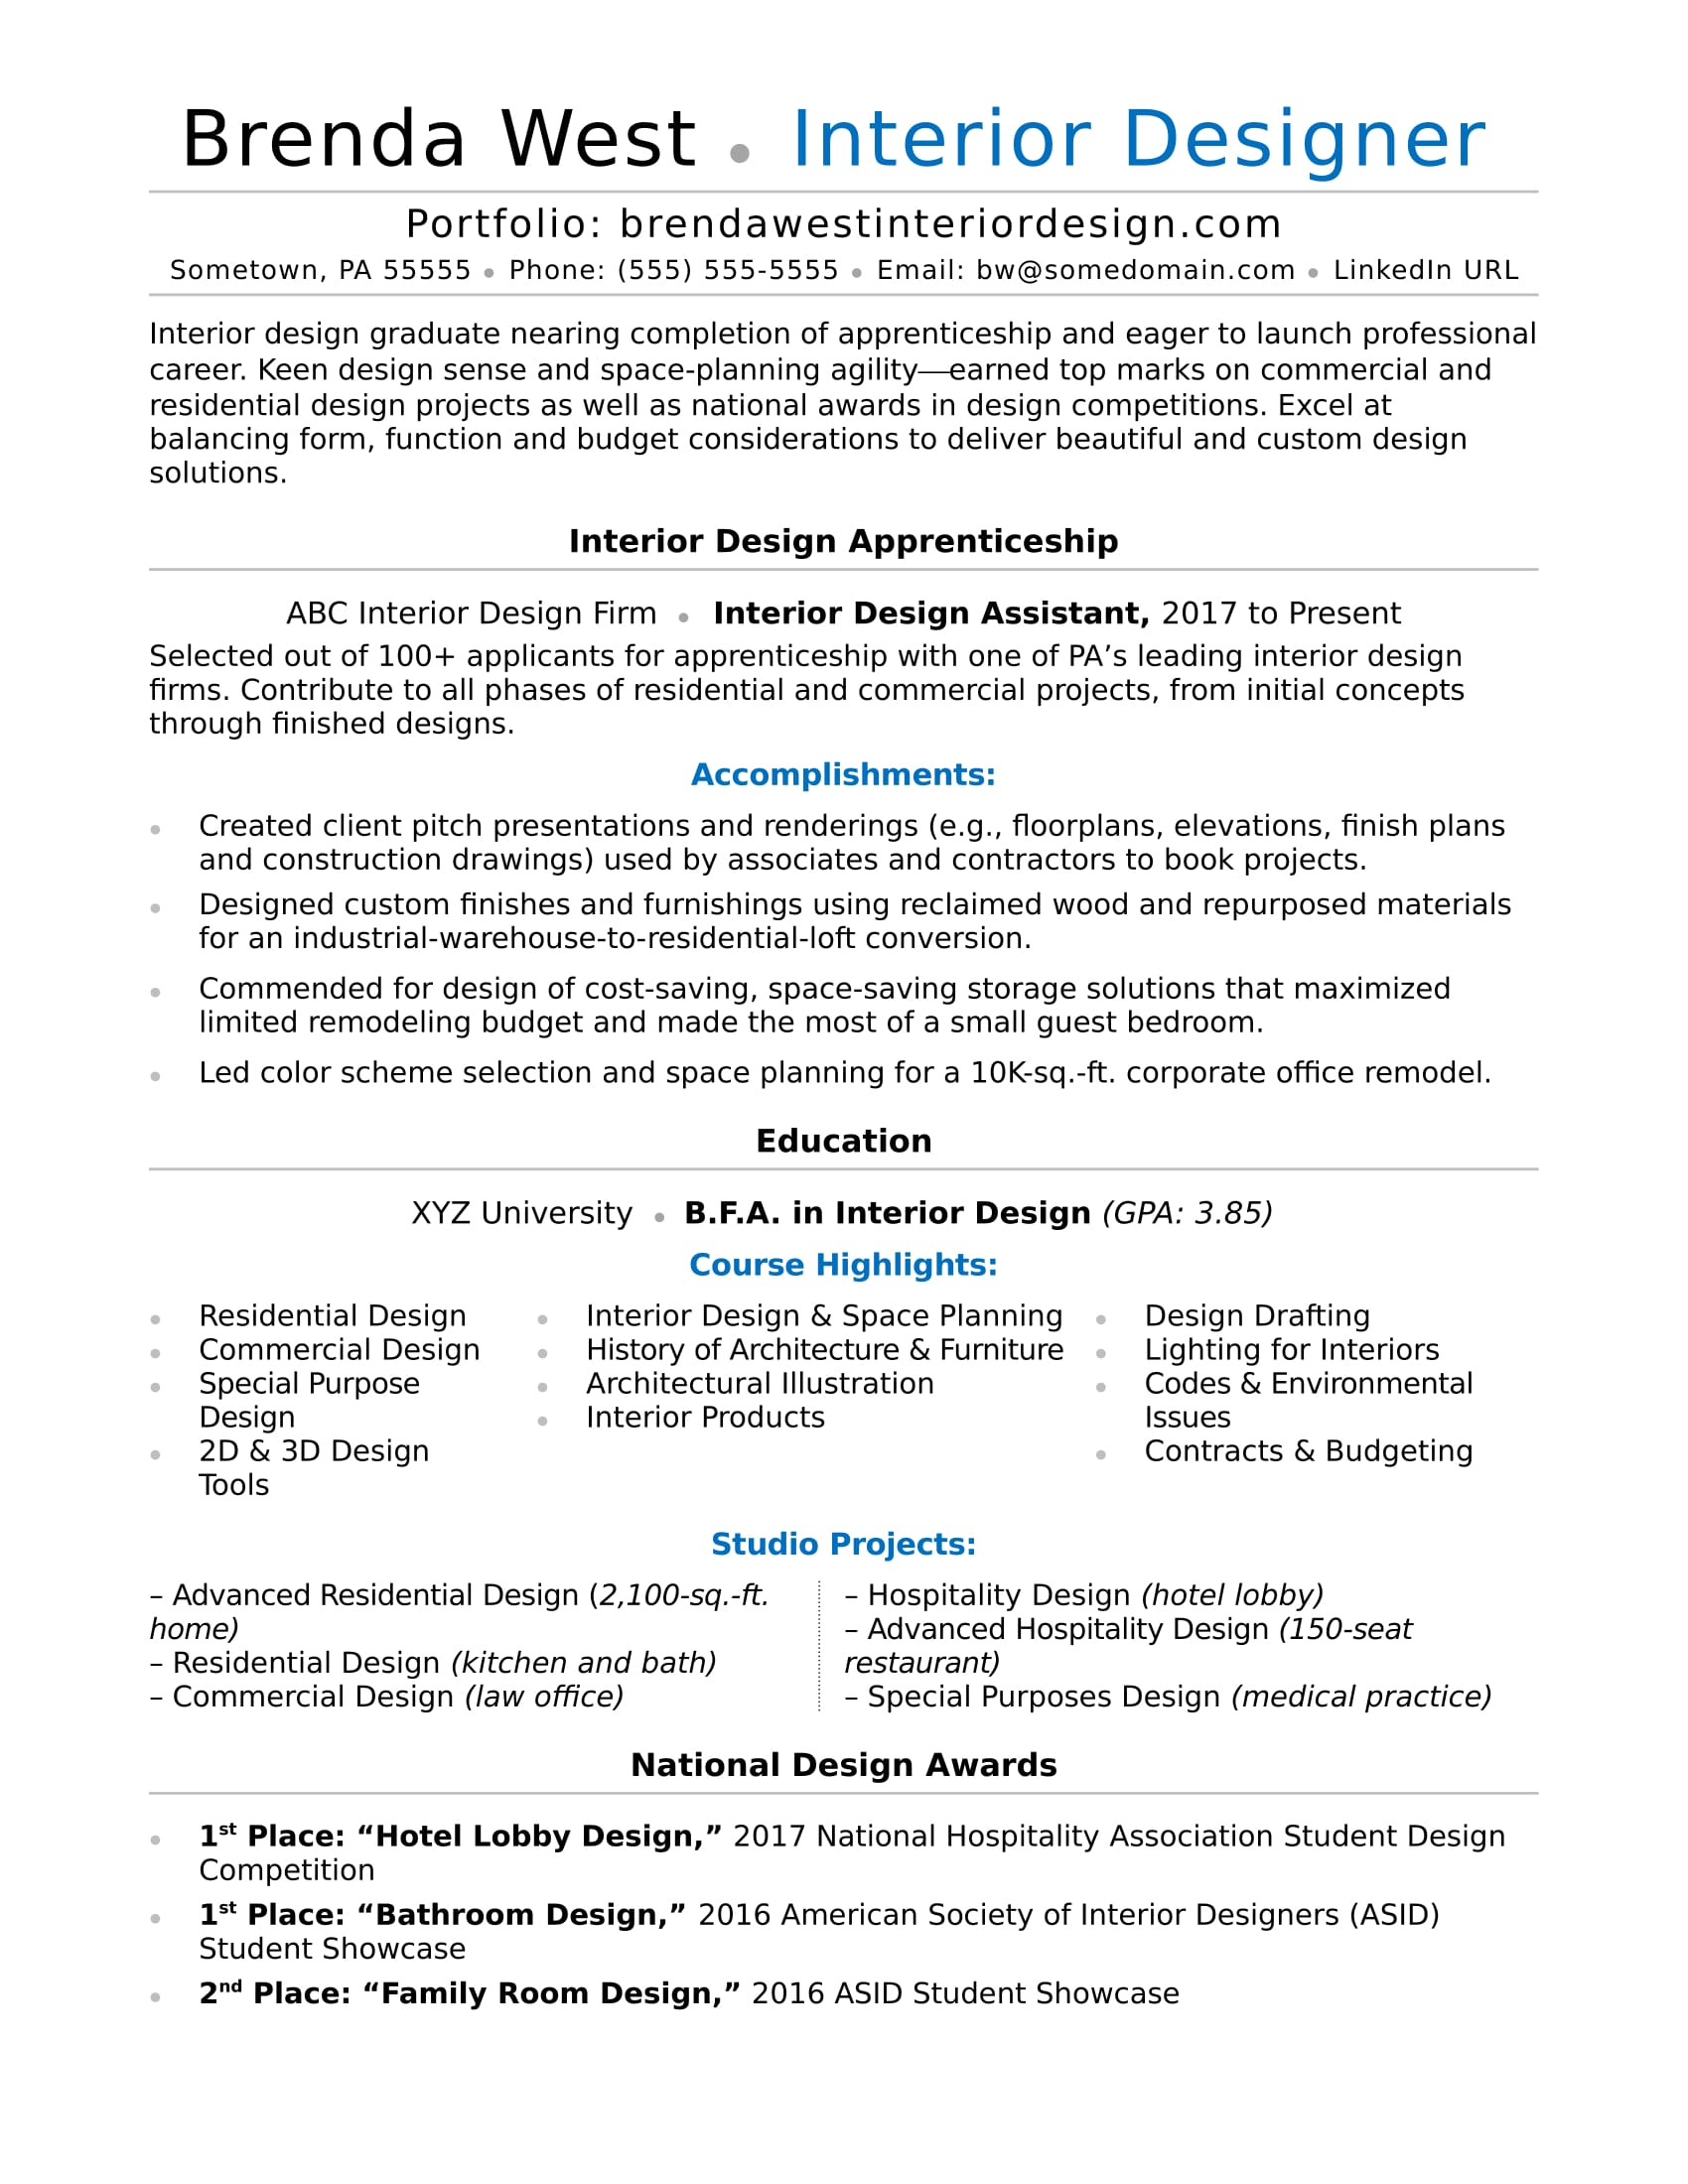 interior design resume sample - Interior Designer Resume